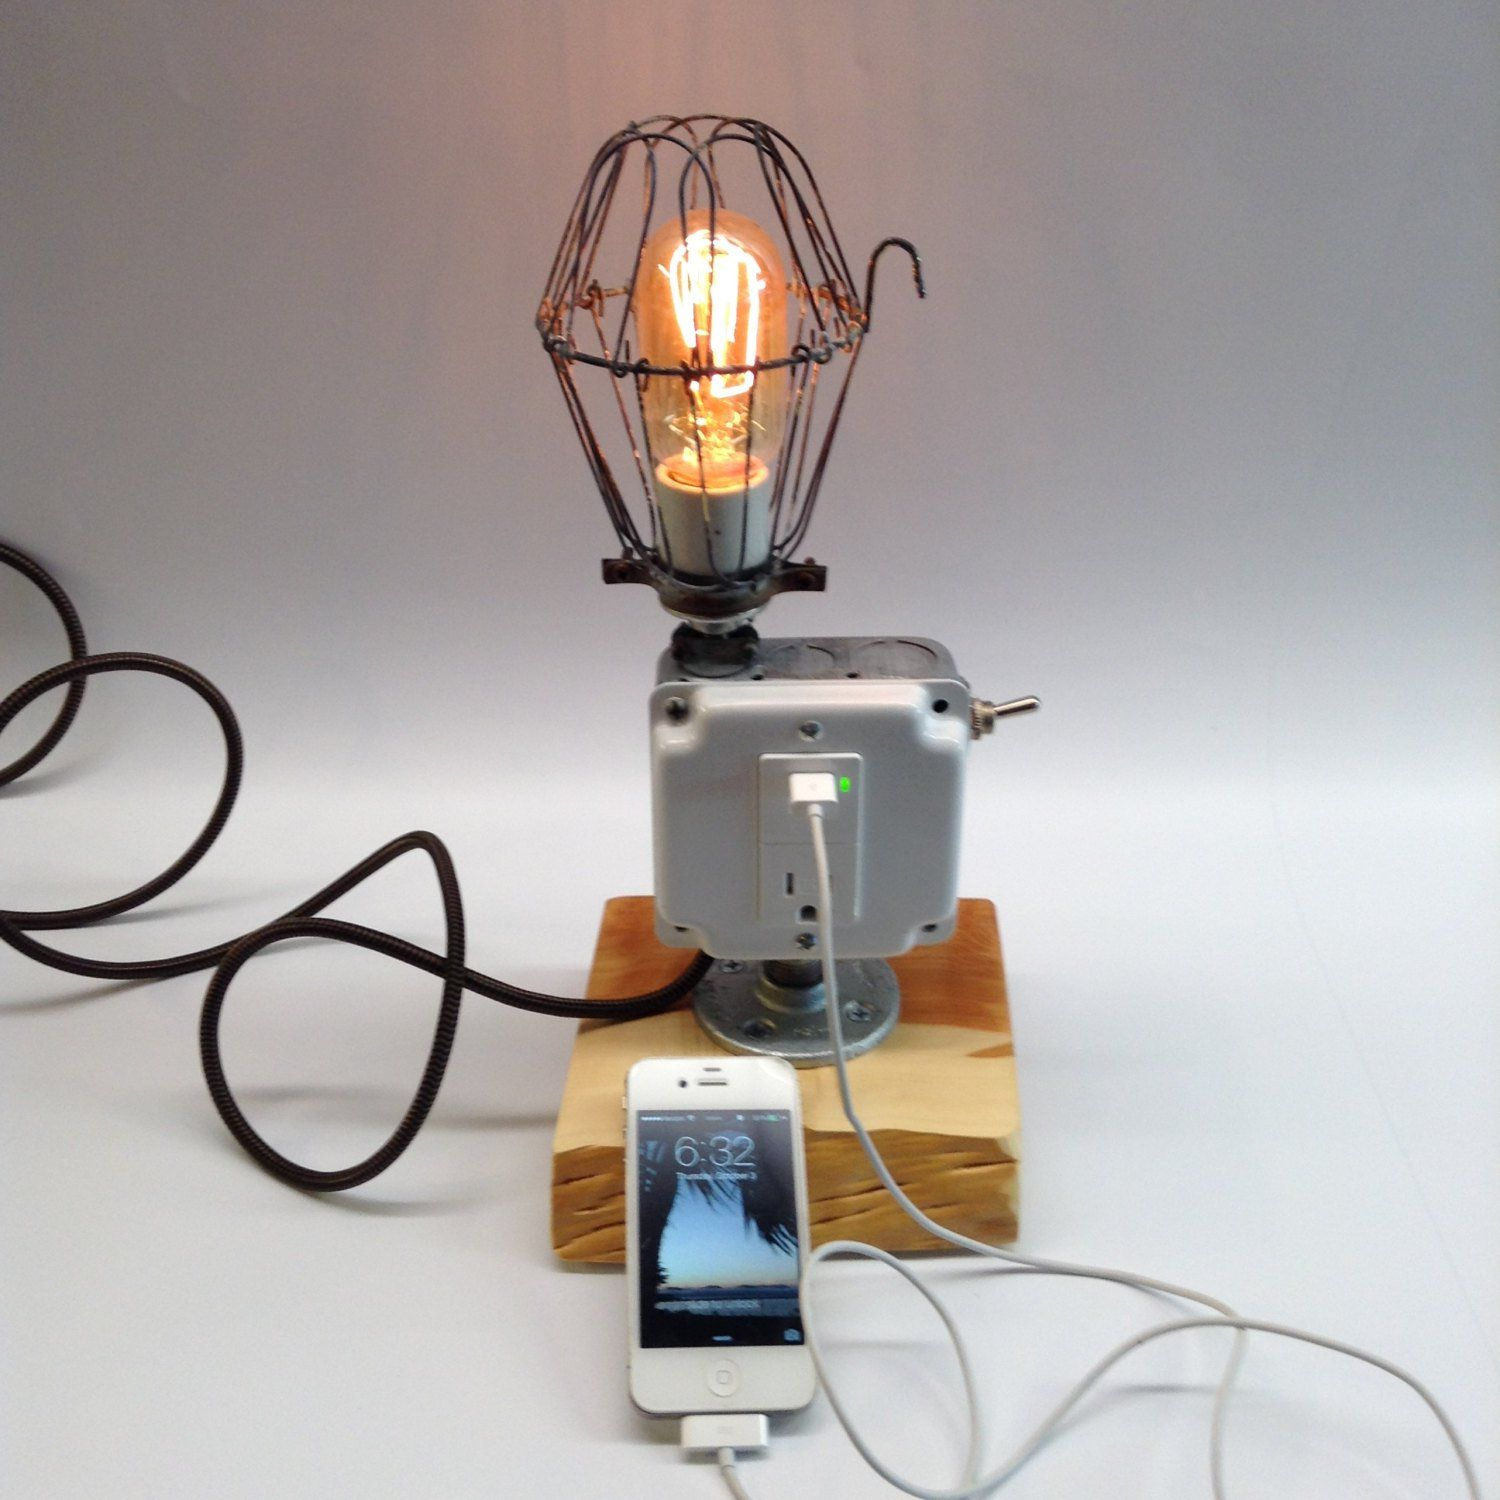 junction box lamp with usb home made lamps pinterest junction box lamp with usb